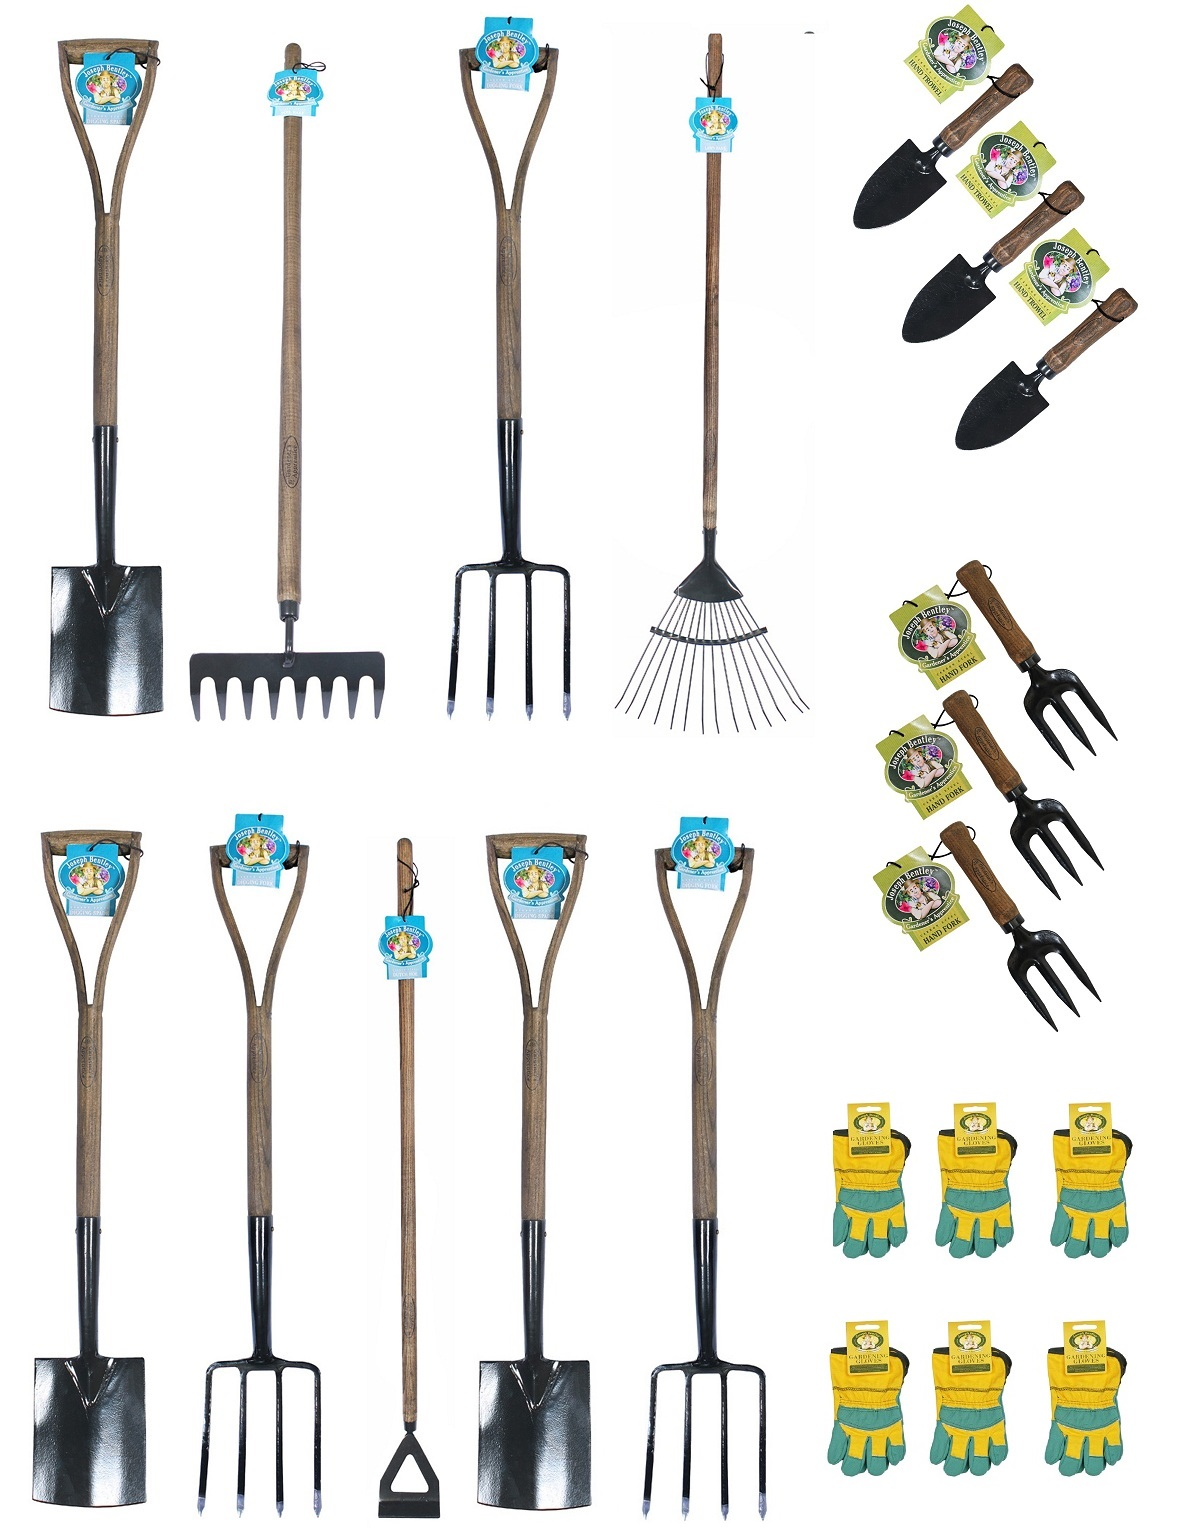 School gardening tools for older children set 2 for Childrens gardening tools